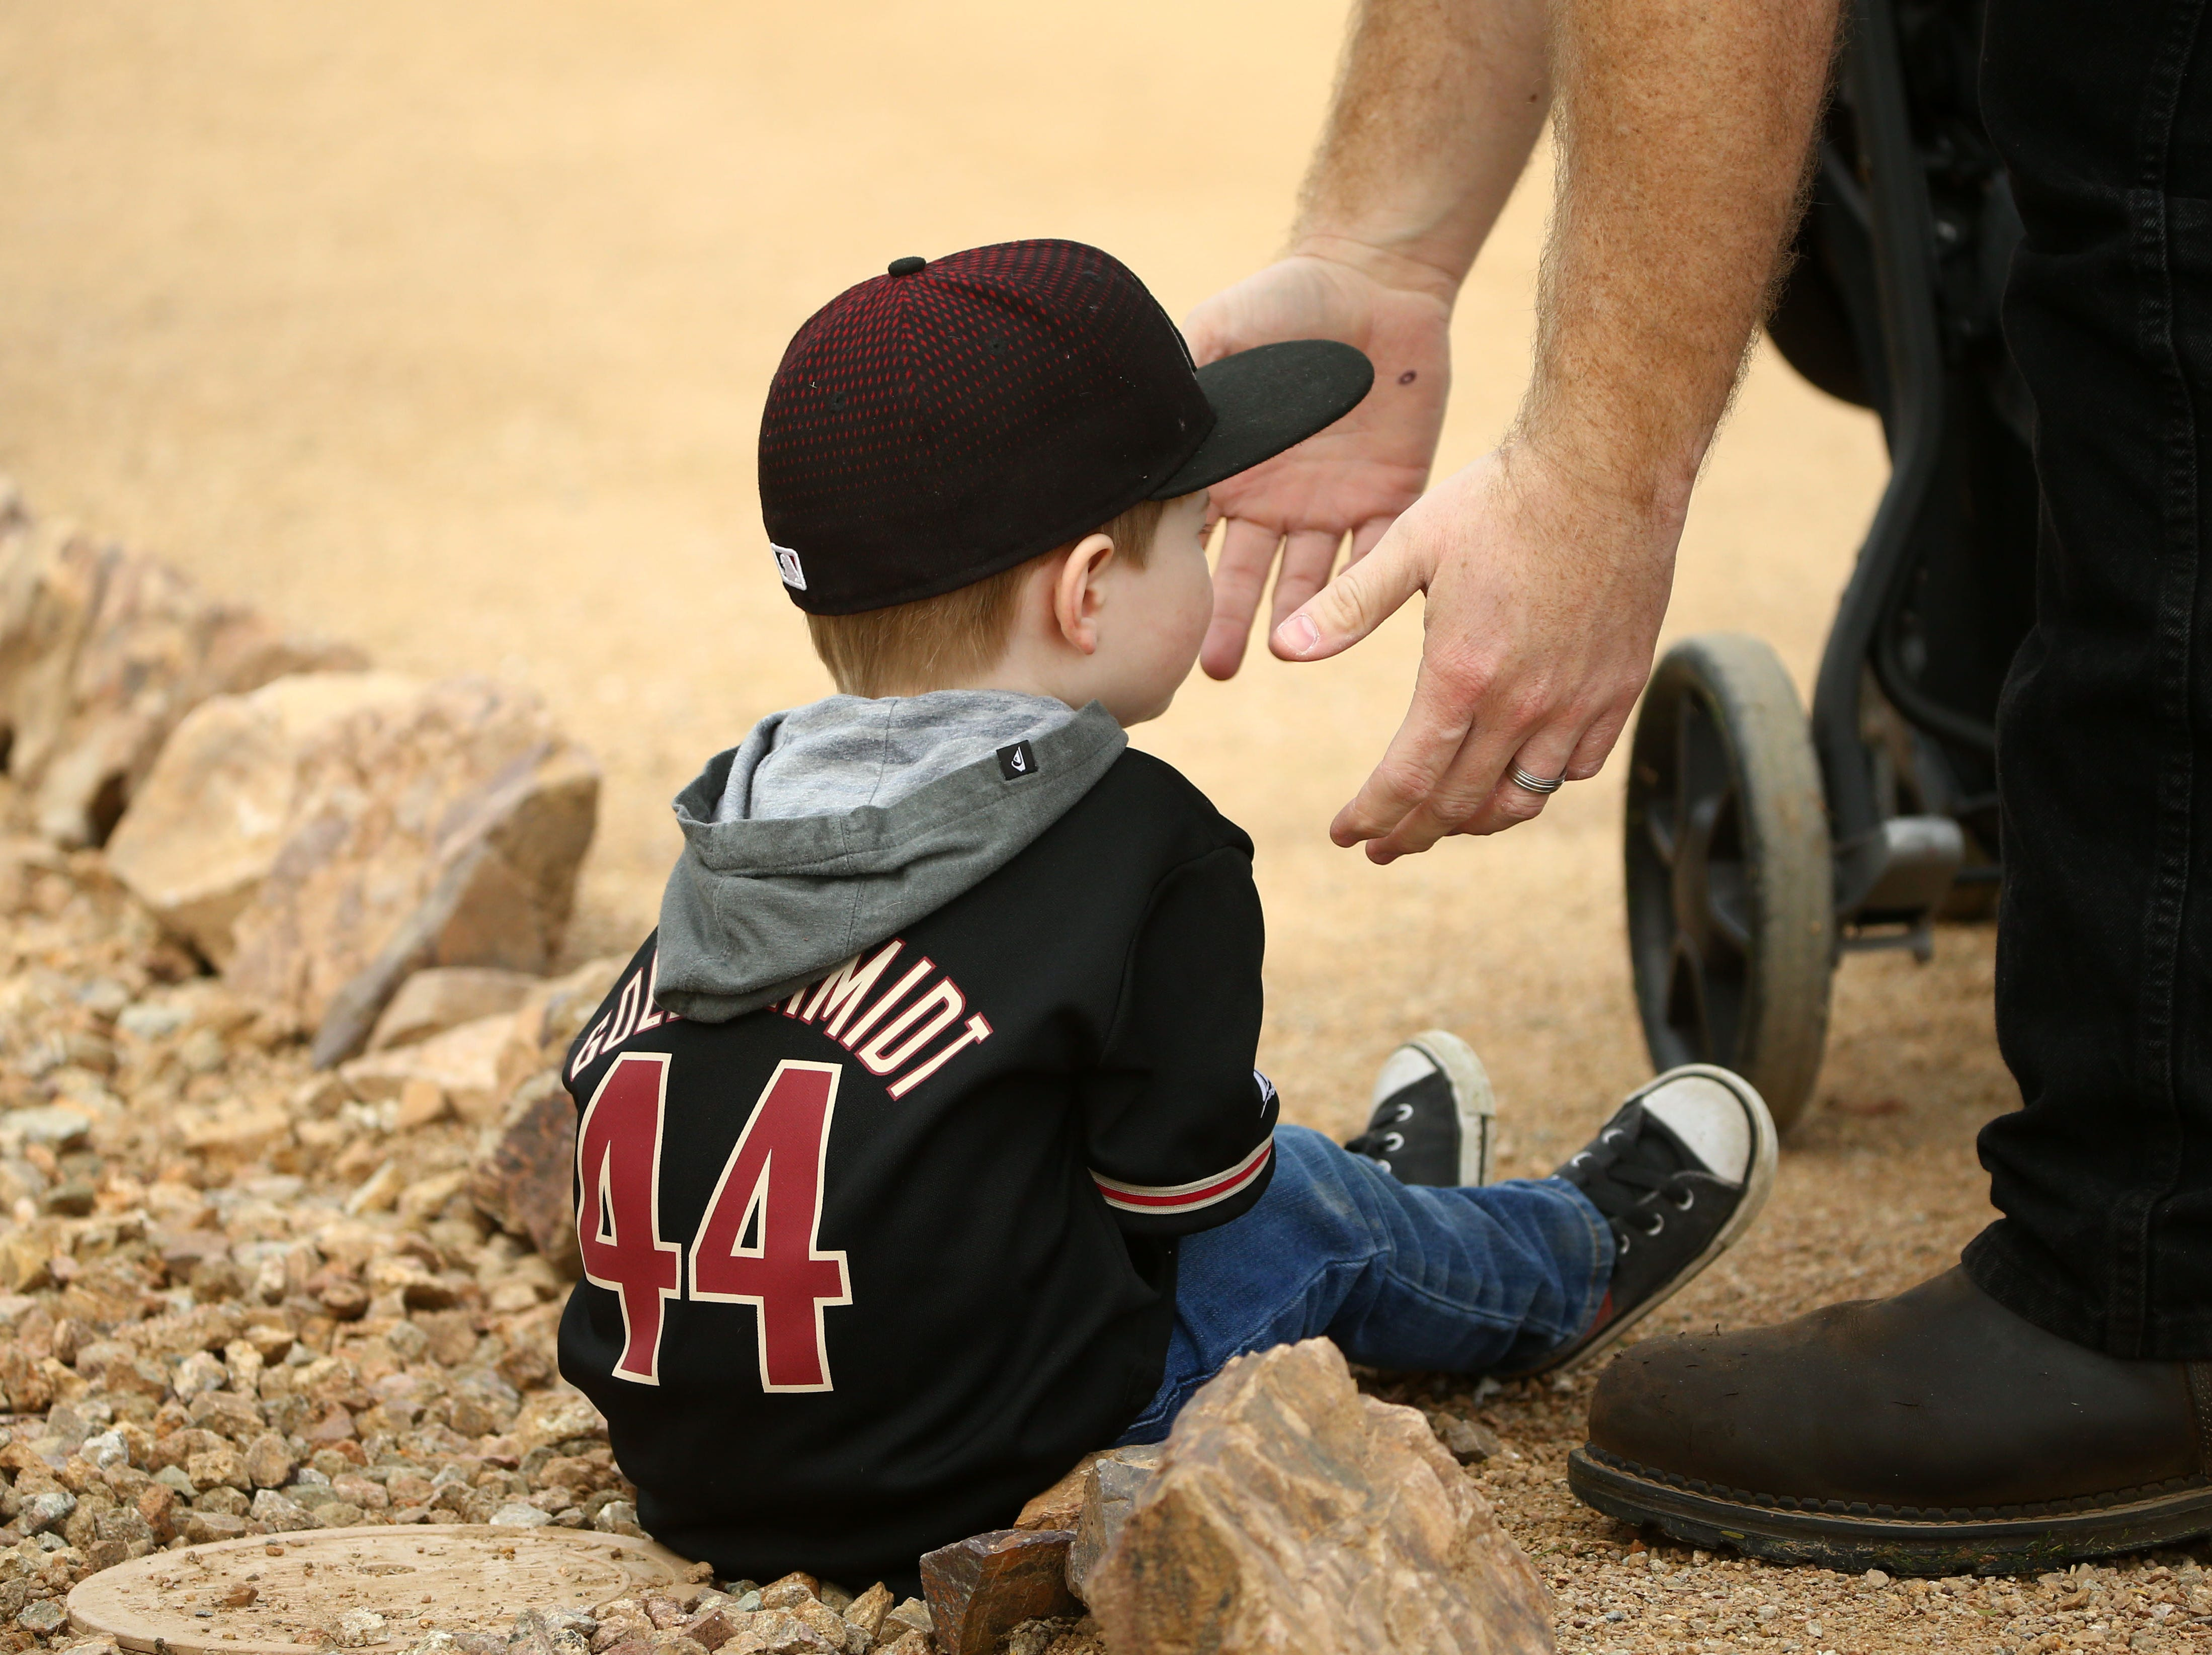 Jack Betts, age-3 of Phoenix wears his Paul Goldschmidt jersey during the first day of spring training workouts for the Arizona Diamondbacks on Feb. 13 at Salt River Fields in Scottsdale.